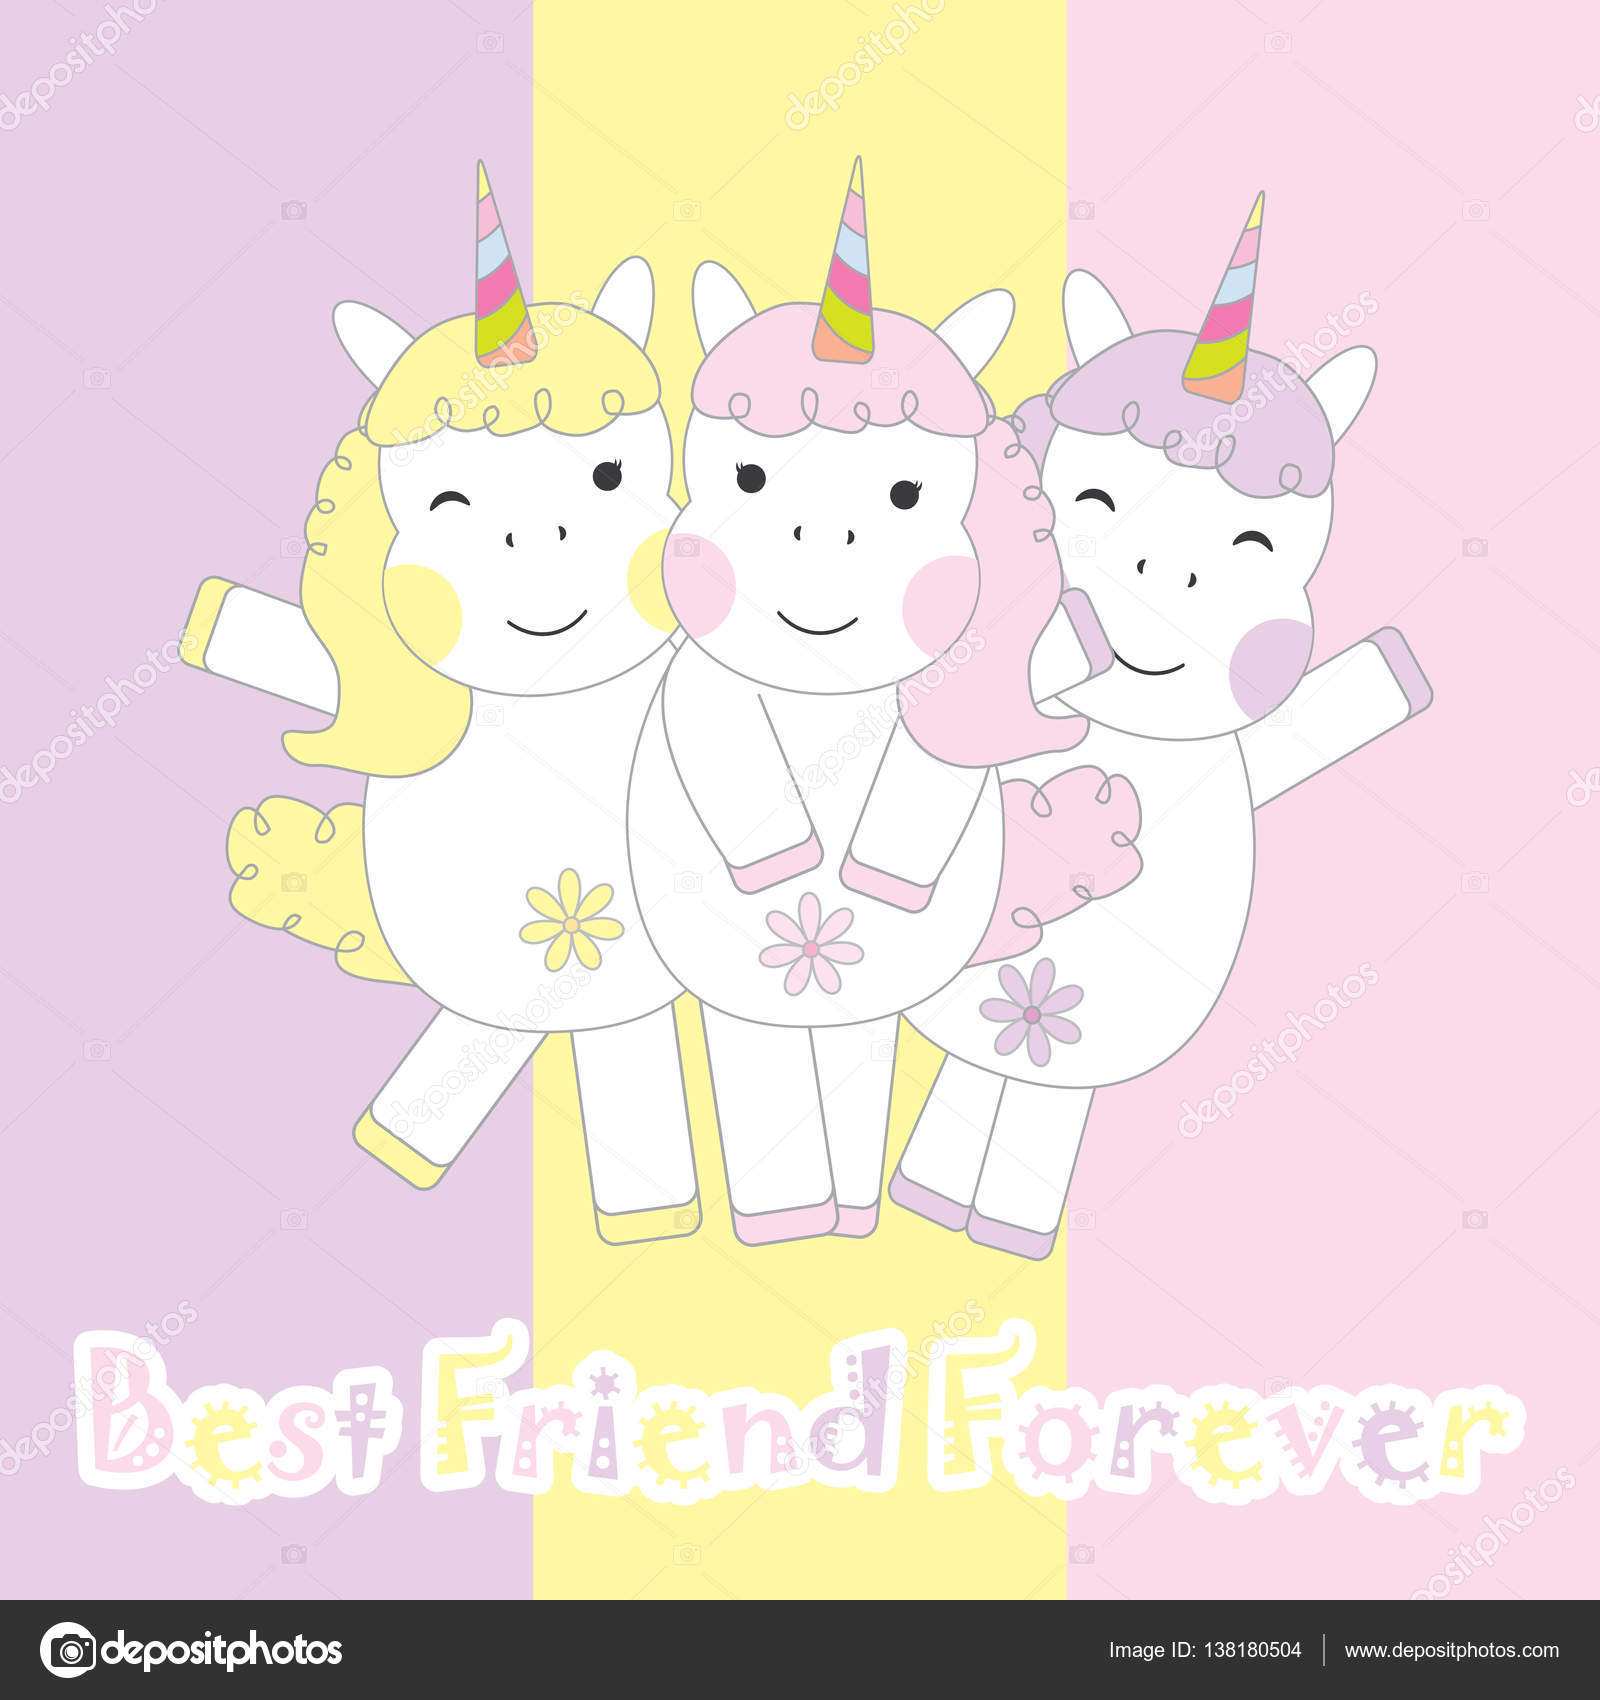 Friendship day card with cute three unicorns stock vector friendship day card with cute three unicorns suitable for friendship greeting card postcard and wallpaper vector by saidi21ns m4hsunfo Gallery